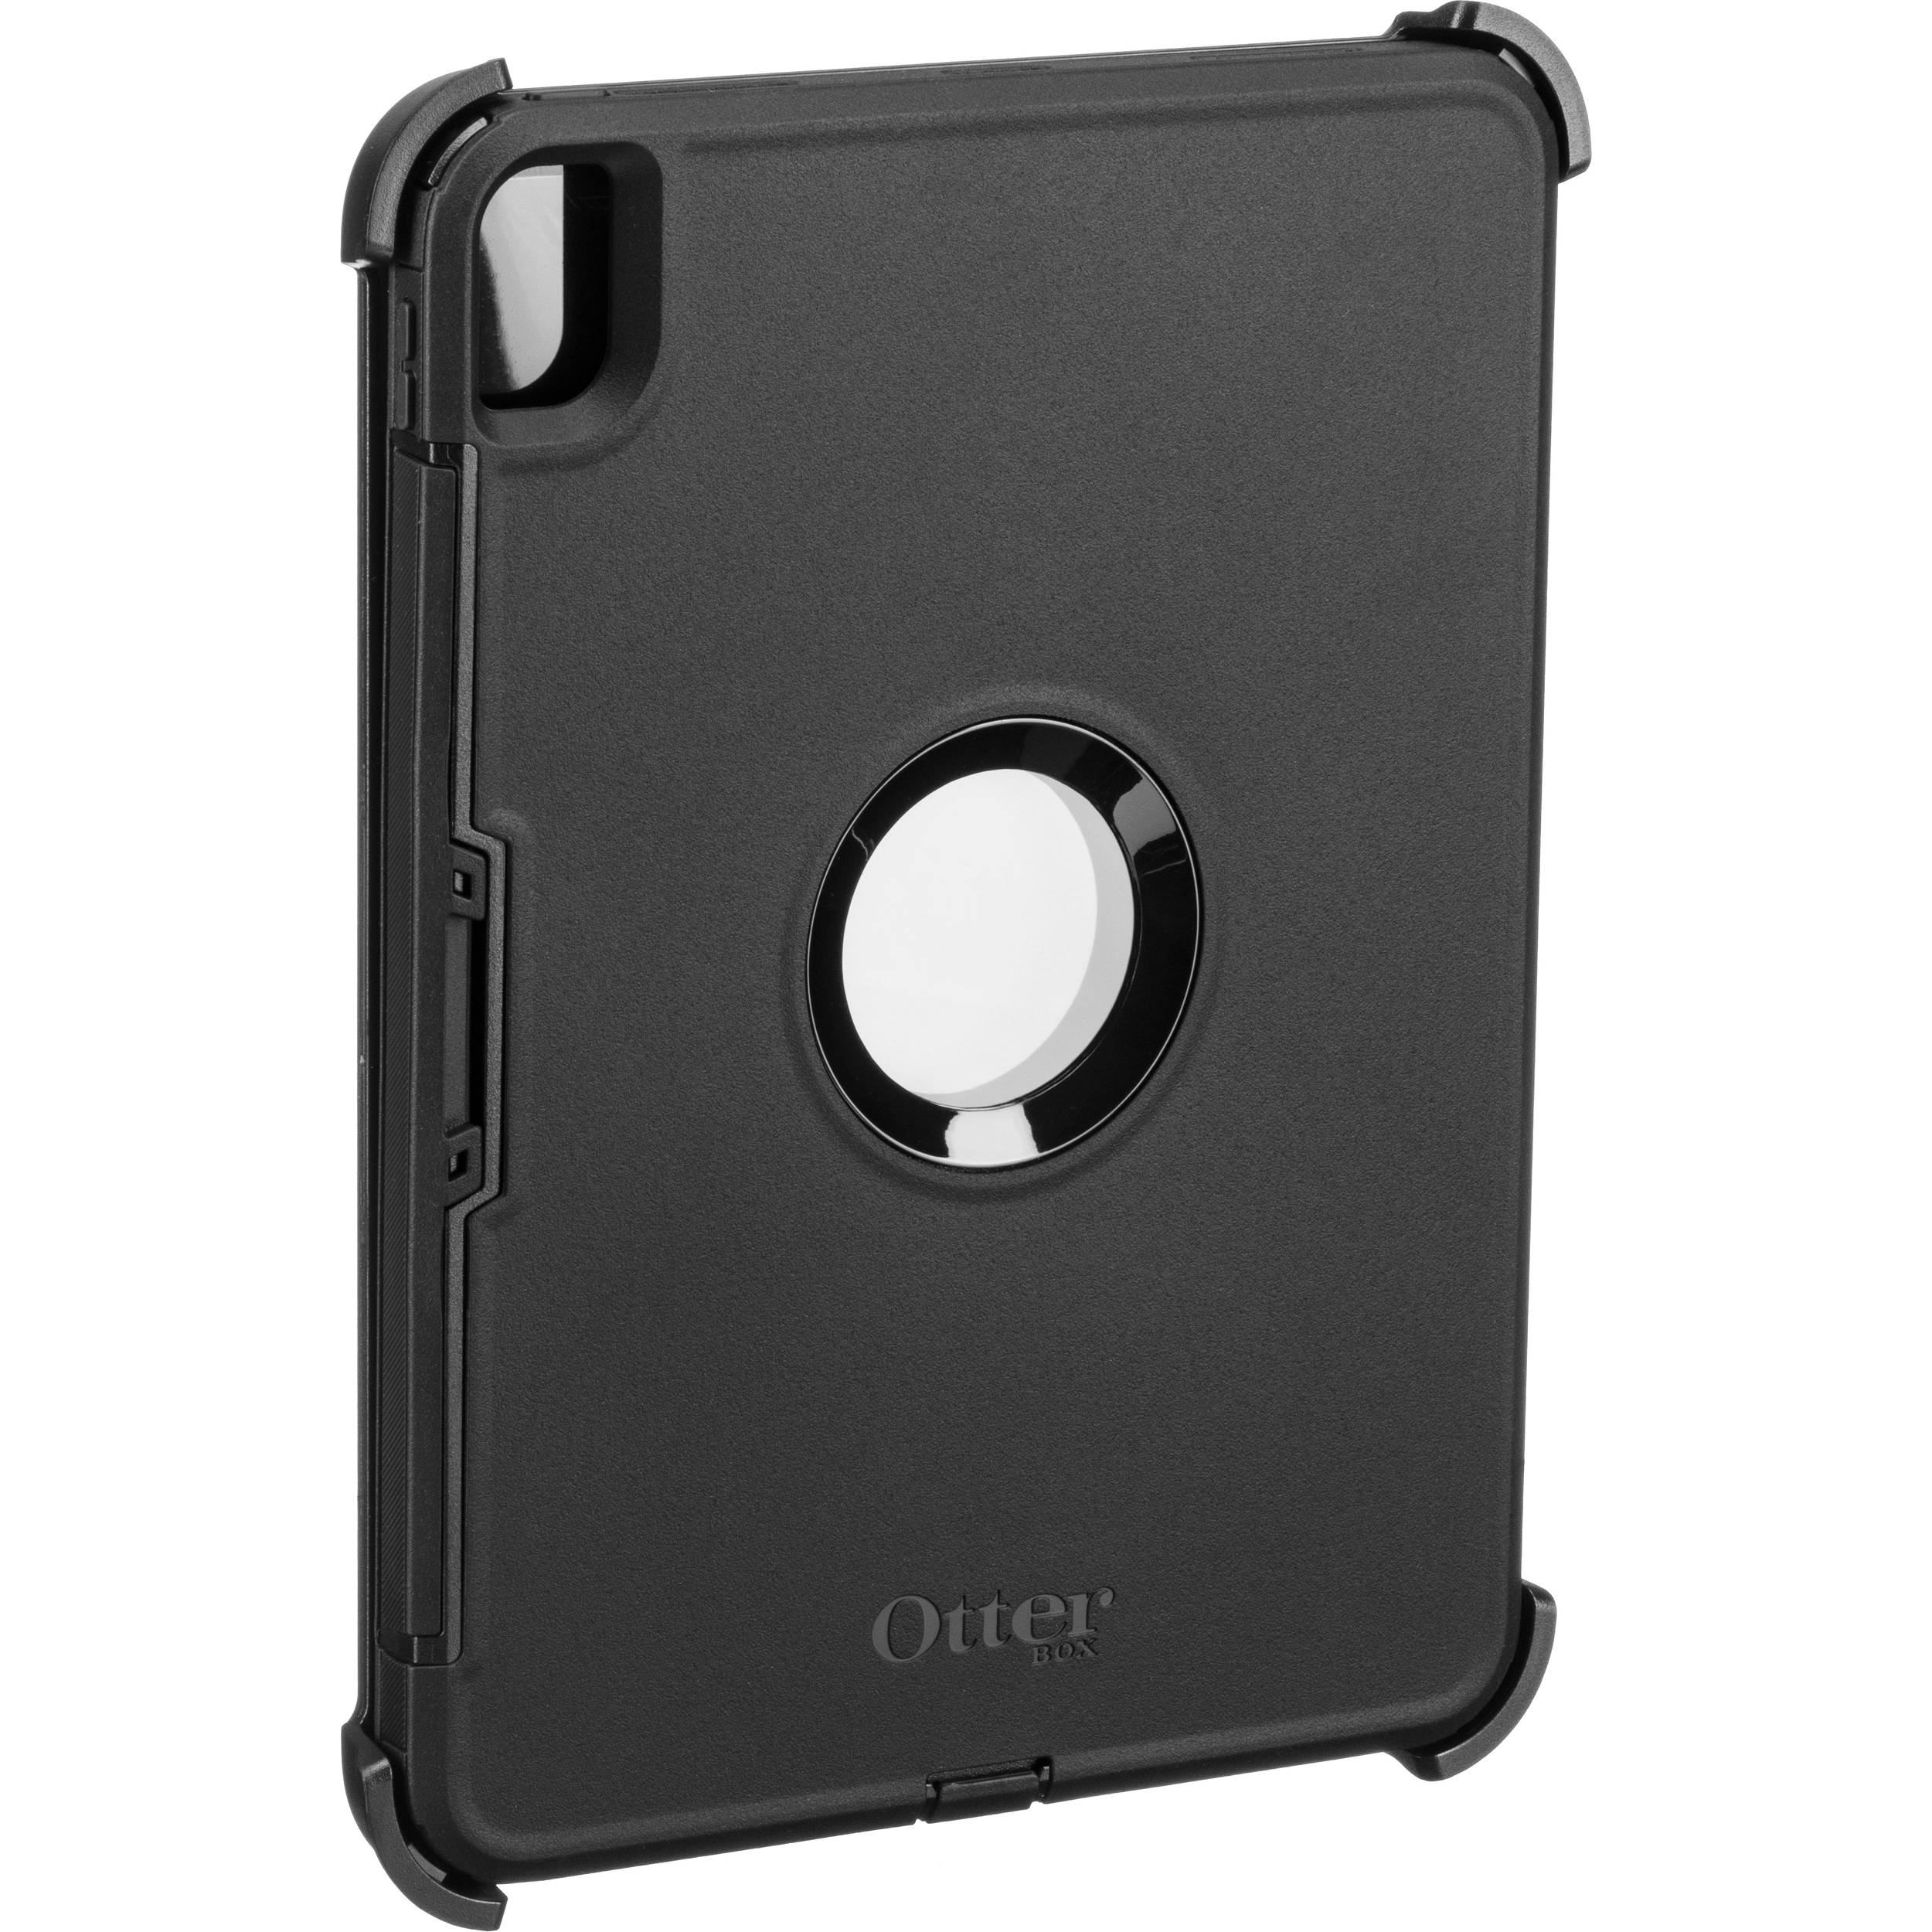 100% authentic e39d9 ed8a5 OtterBox Defender Series Case for 11